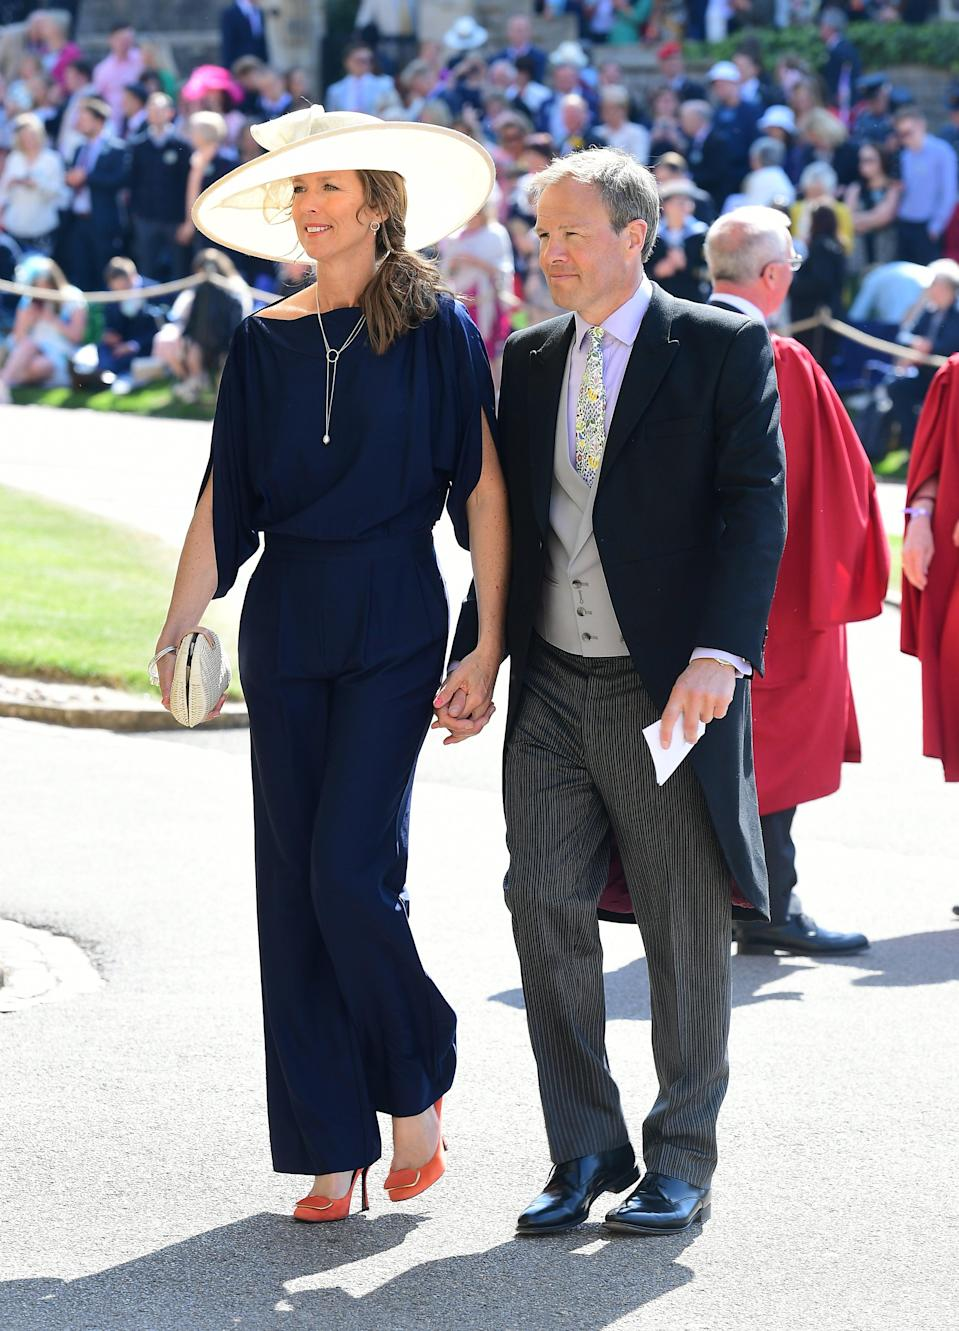 Tom Bradby attending Prince Harry's wedding to Meghan Markle in 2018 (pictured is Bradby with is wife Claudia)PA